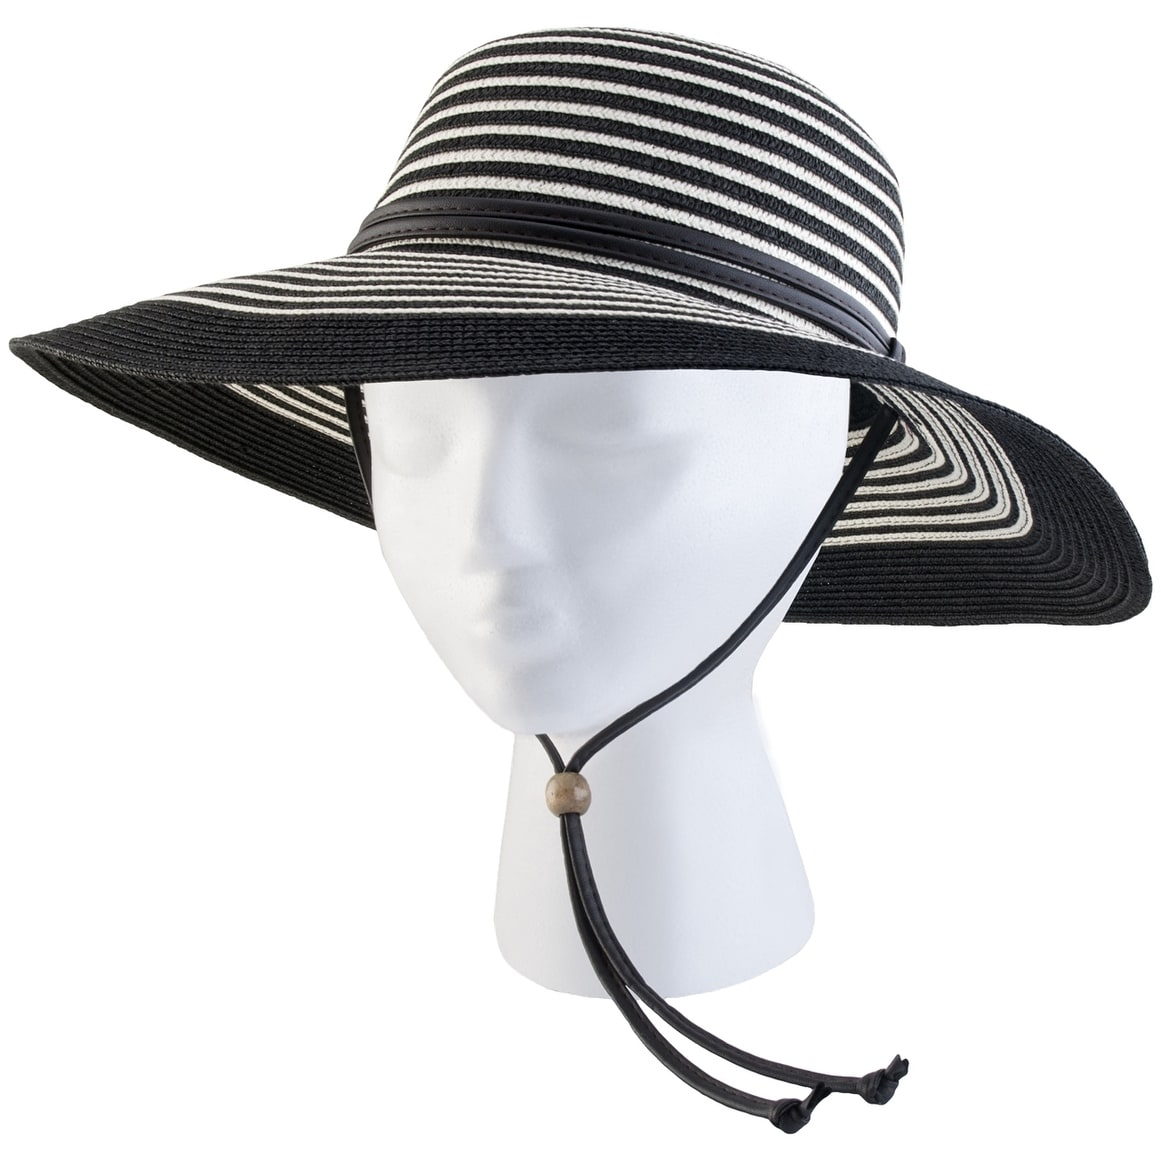 b49e7fcade2ce2 Shop Sloggers 442BW Women's Braided Wide Brim Sun Hat, UPF 50+, Black &  White - Free Shipping On Orders Over $45 - Overstock - 25096270